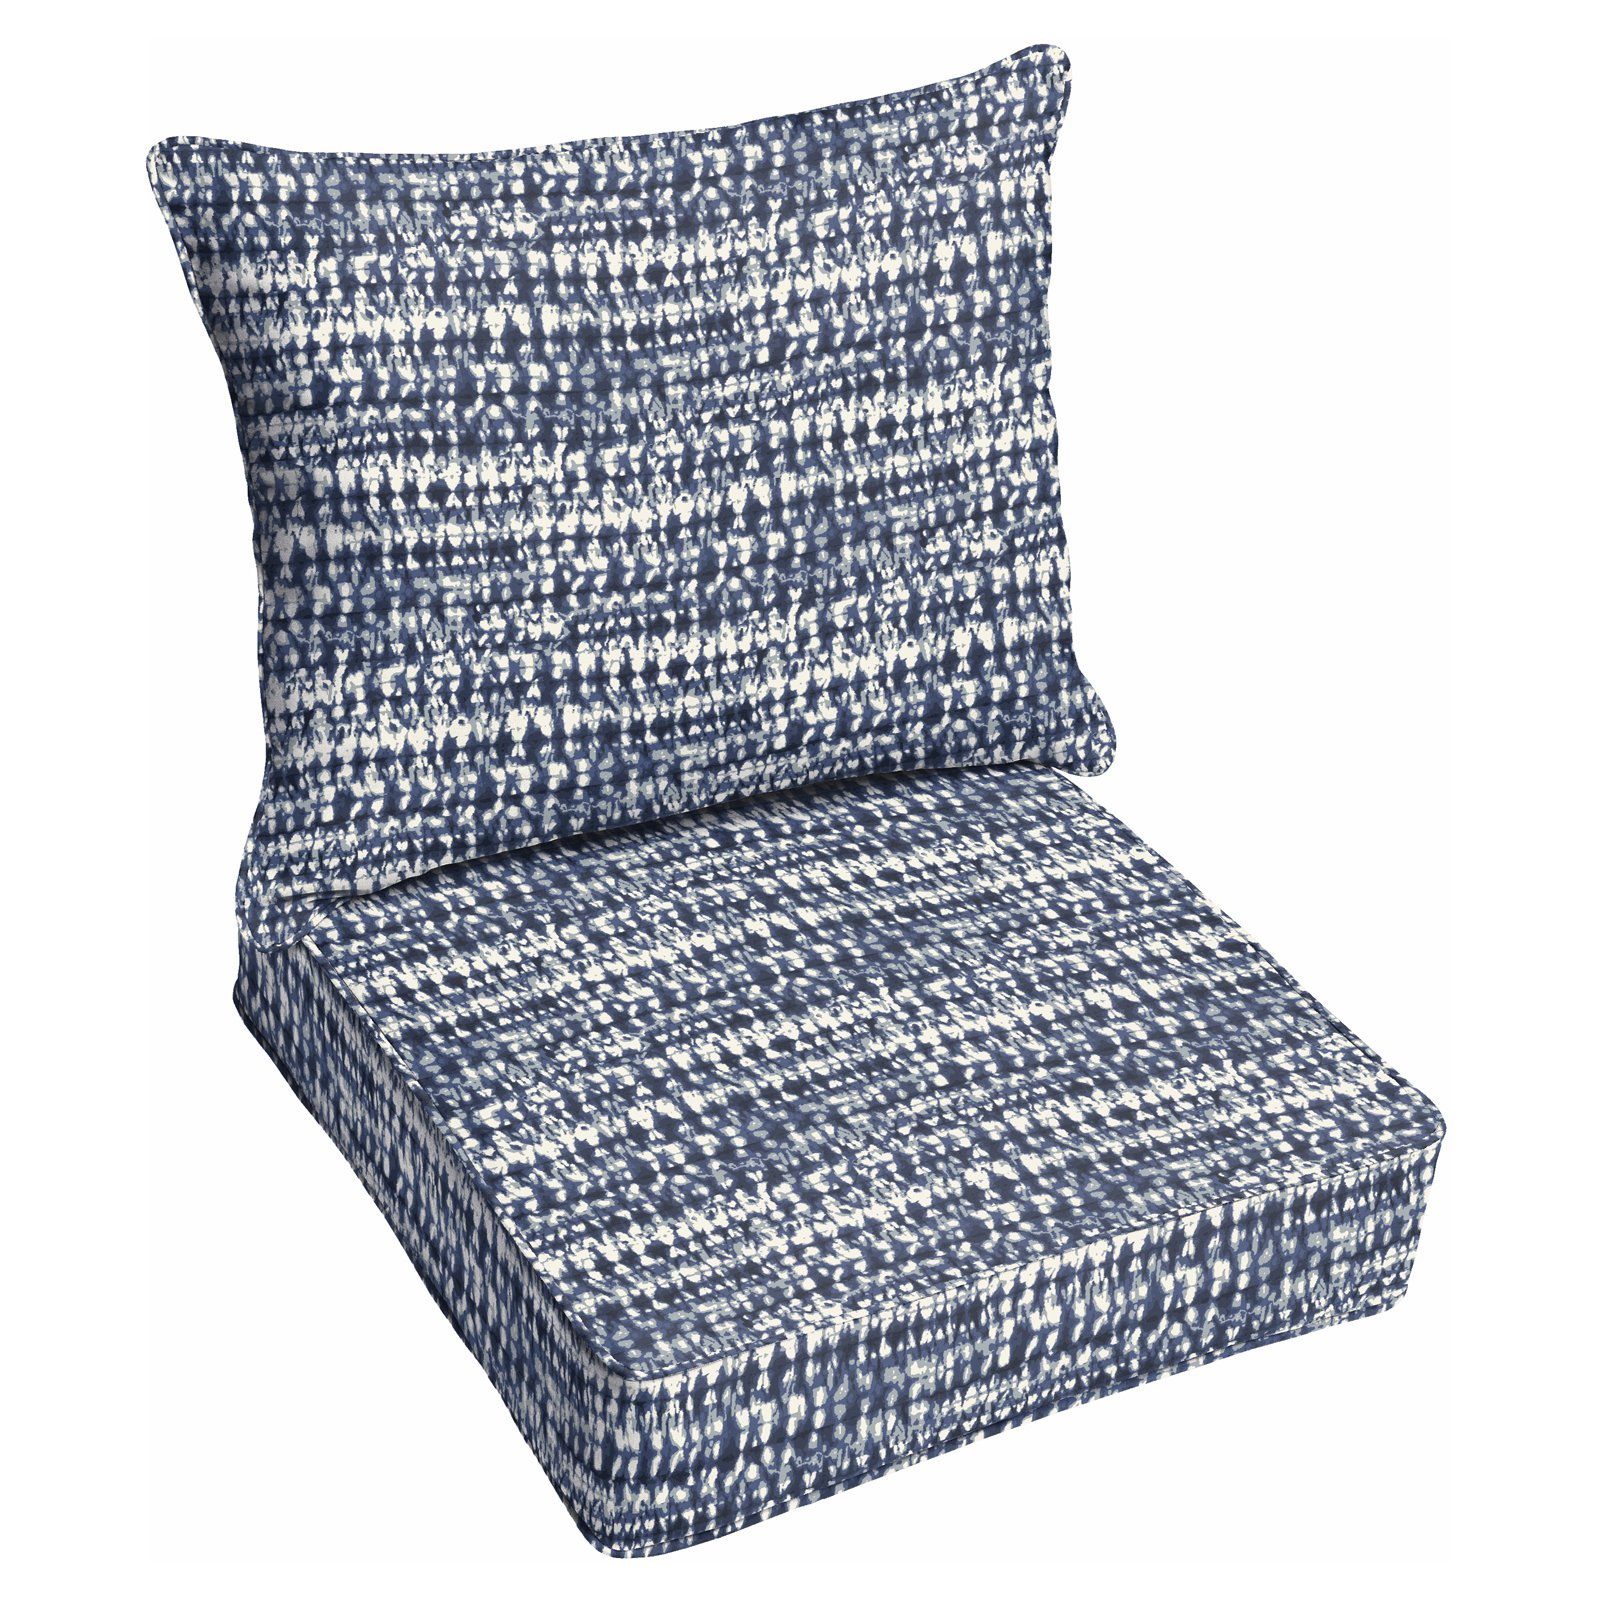 Mozaic Company Outdoor Corded Chair Cushion And Pillow Set Perron Navy